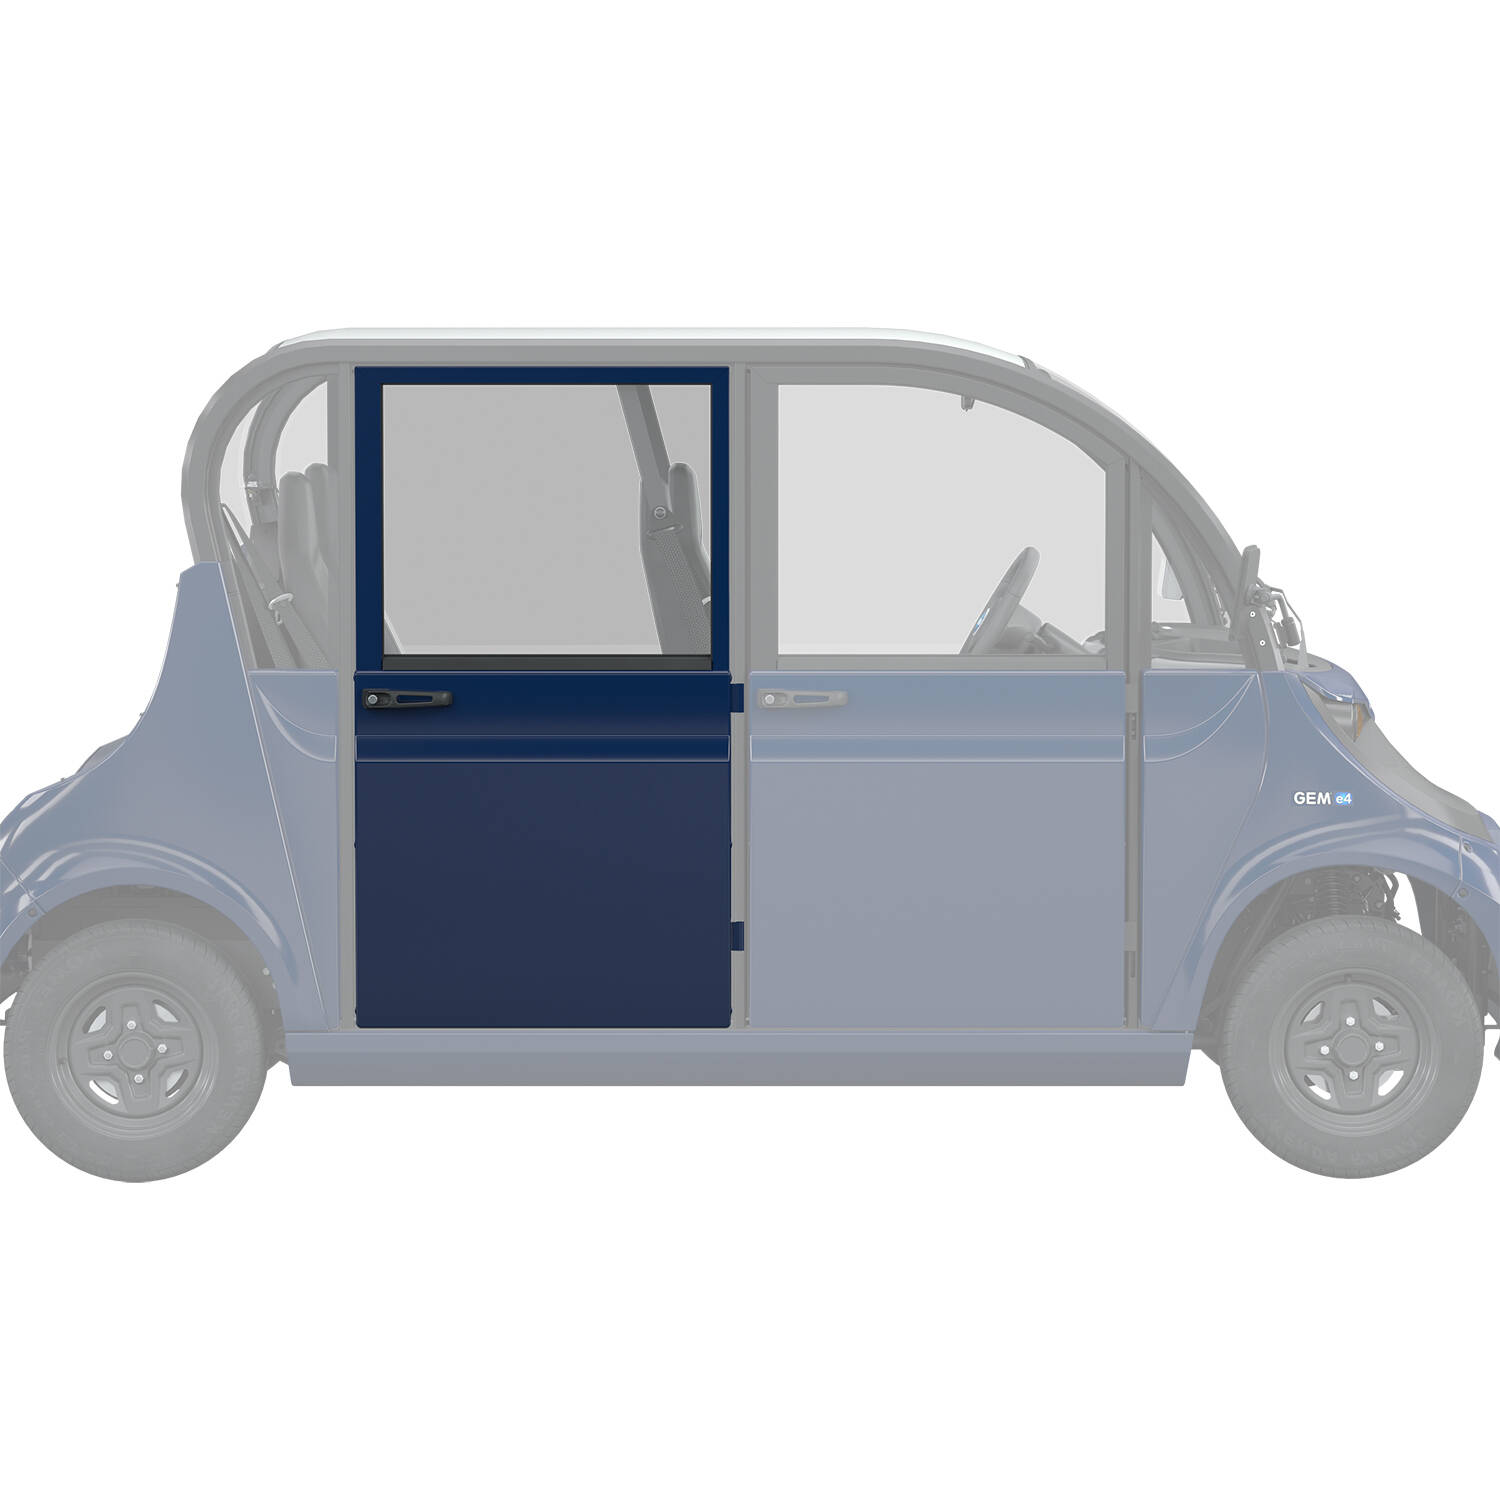 Full Middle/Rear Door Right, Blue